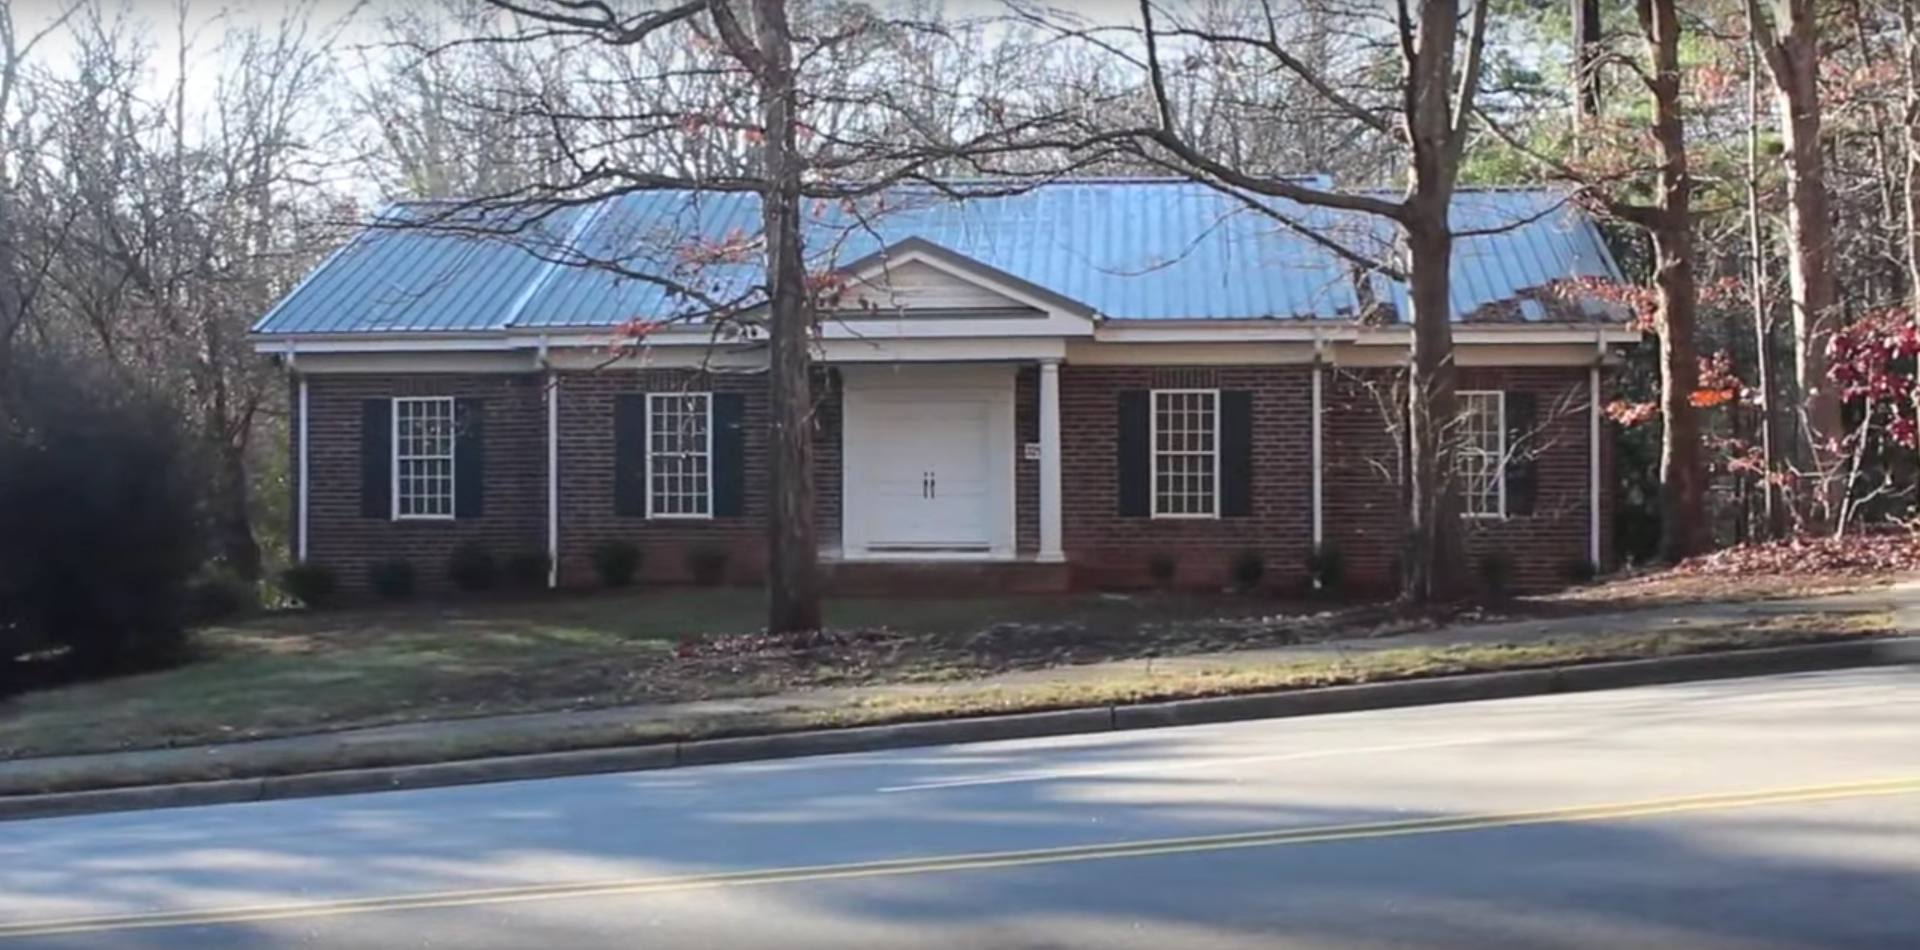 The House On Wade Avenue WUNC / Youtube